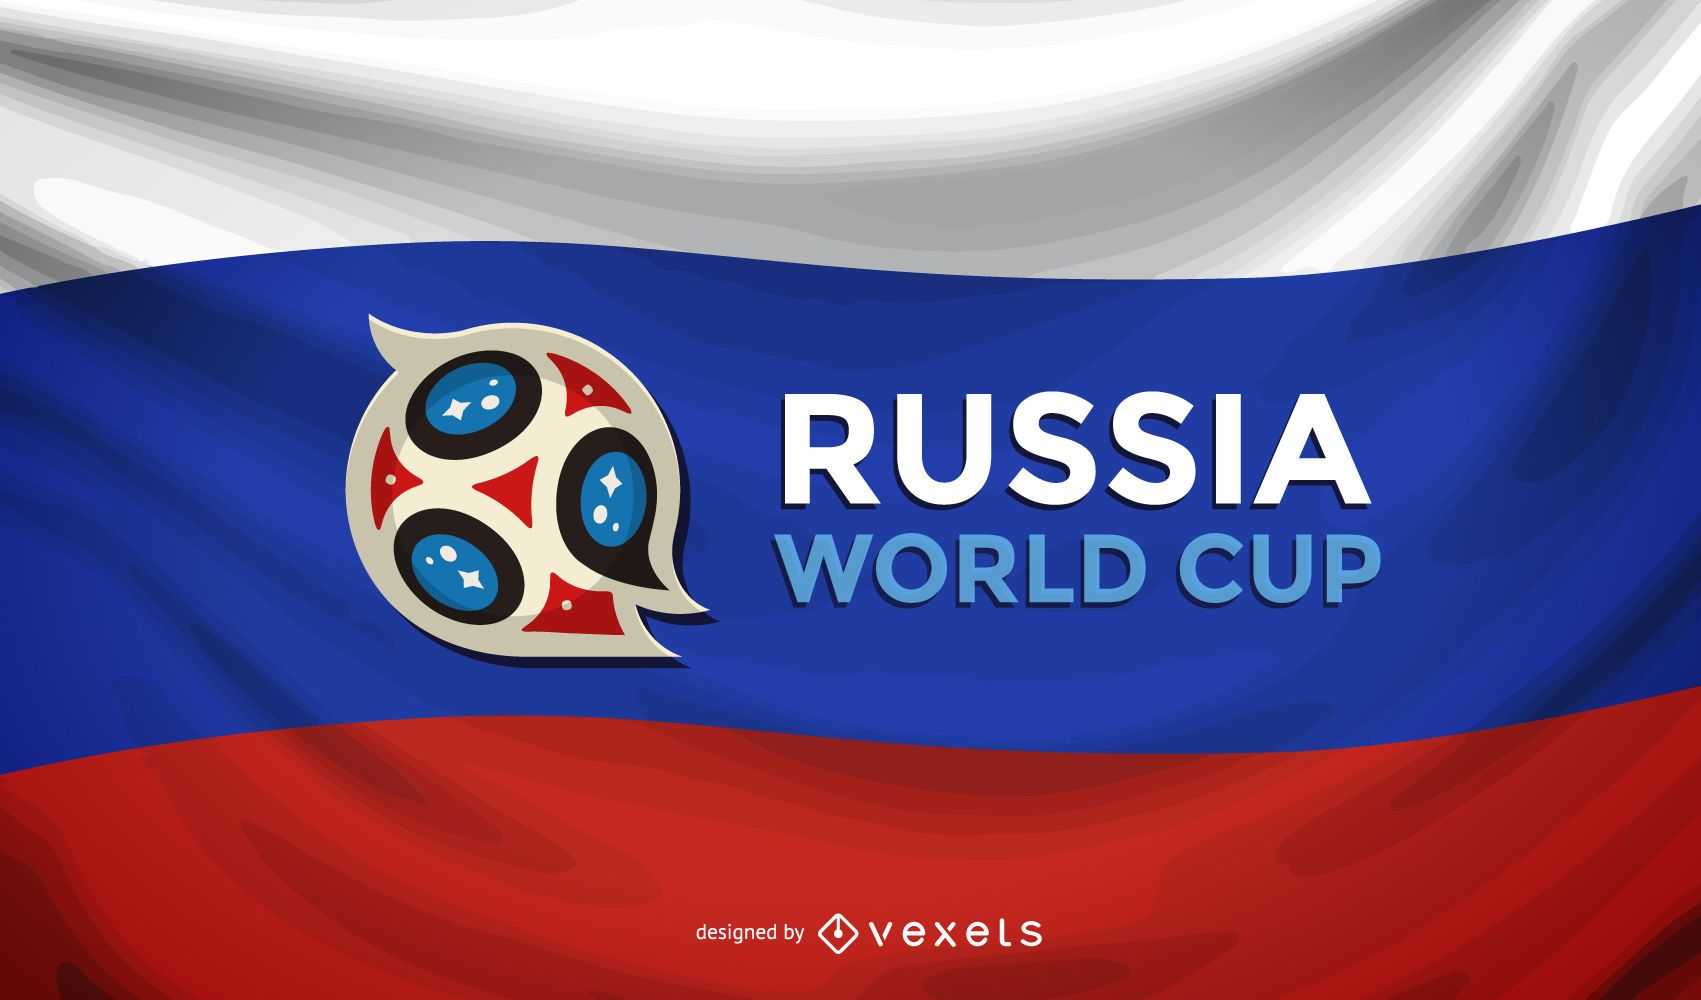 Russia world cup flag background